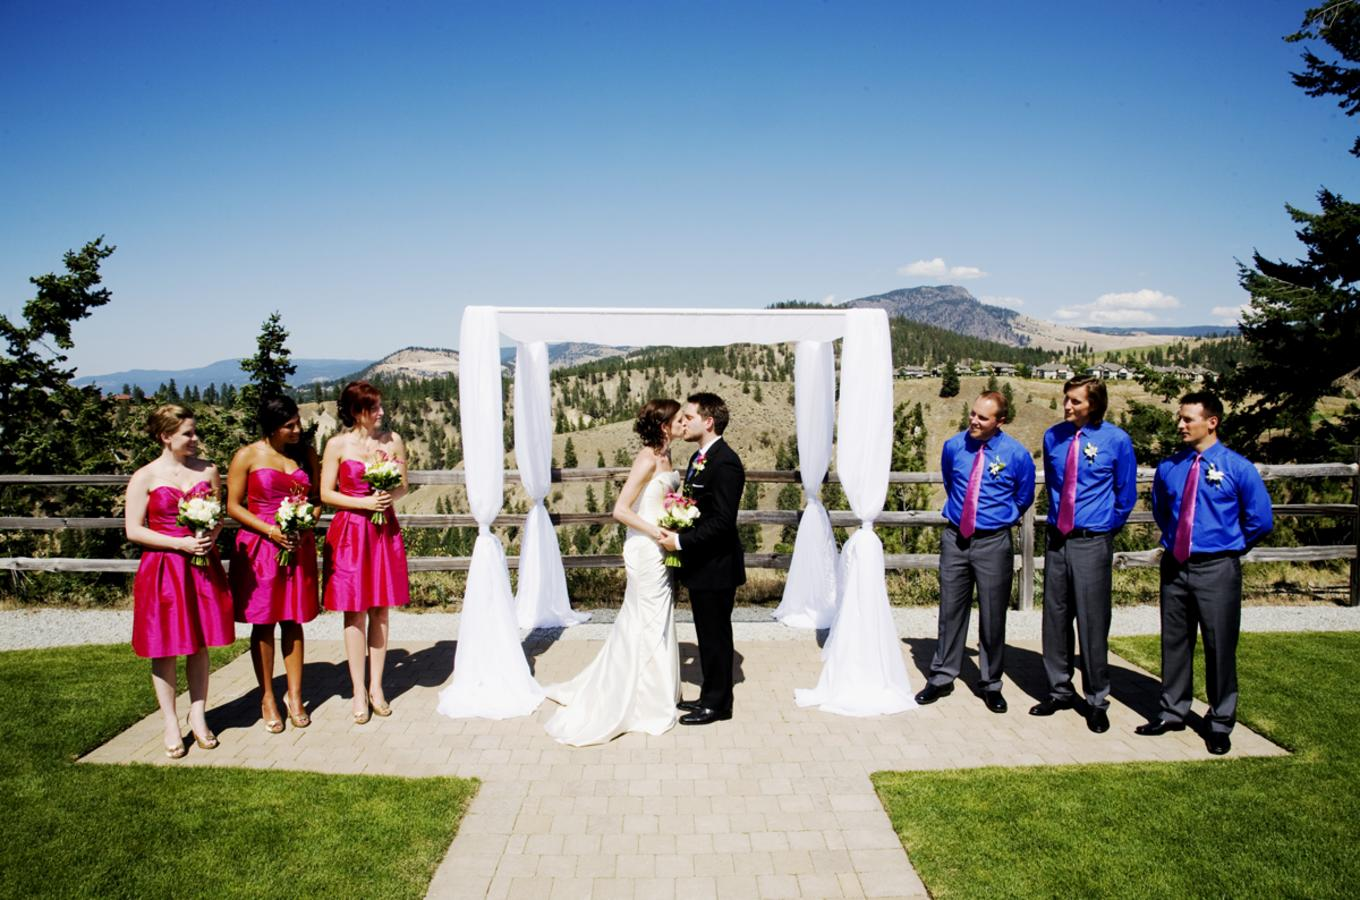 Gallagher's Canyon - Weddings & Events Image 2